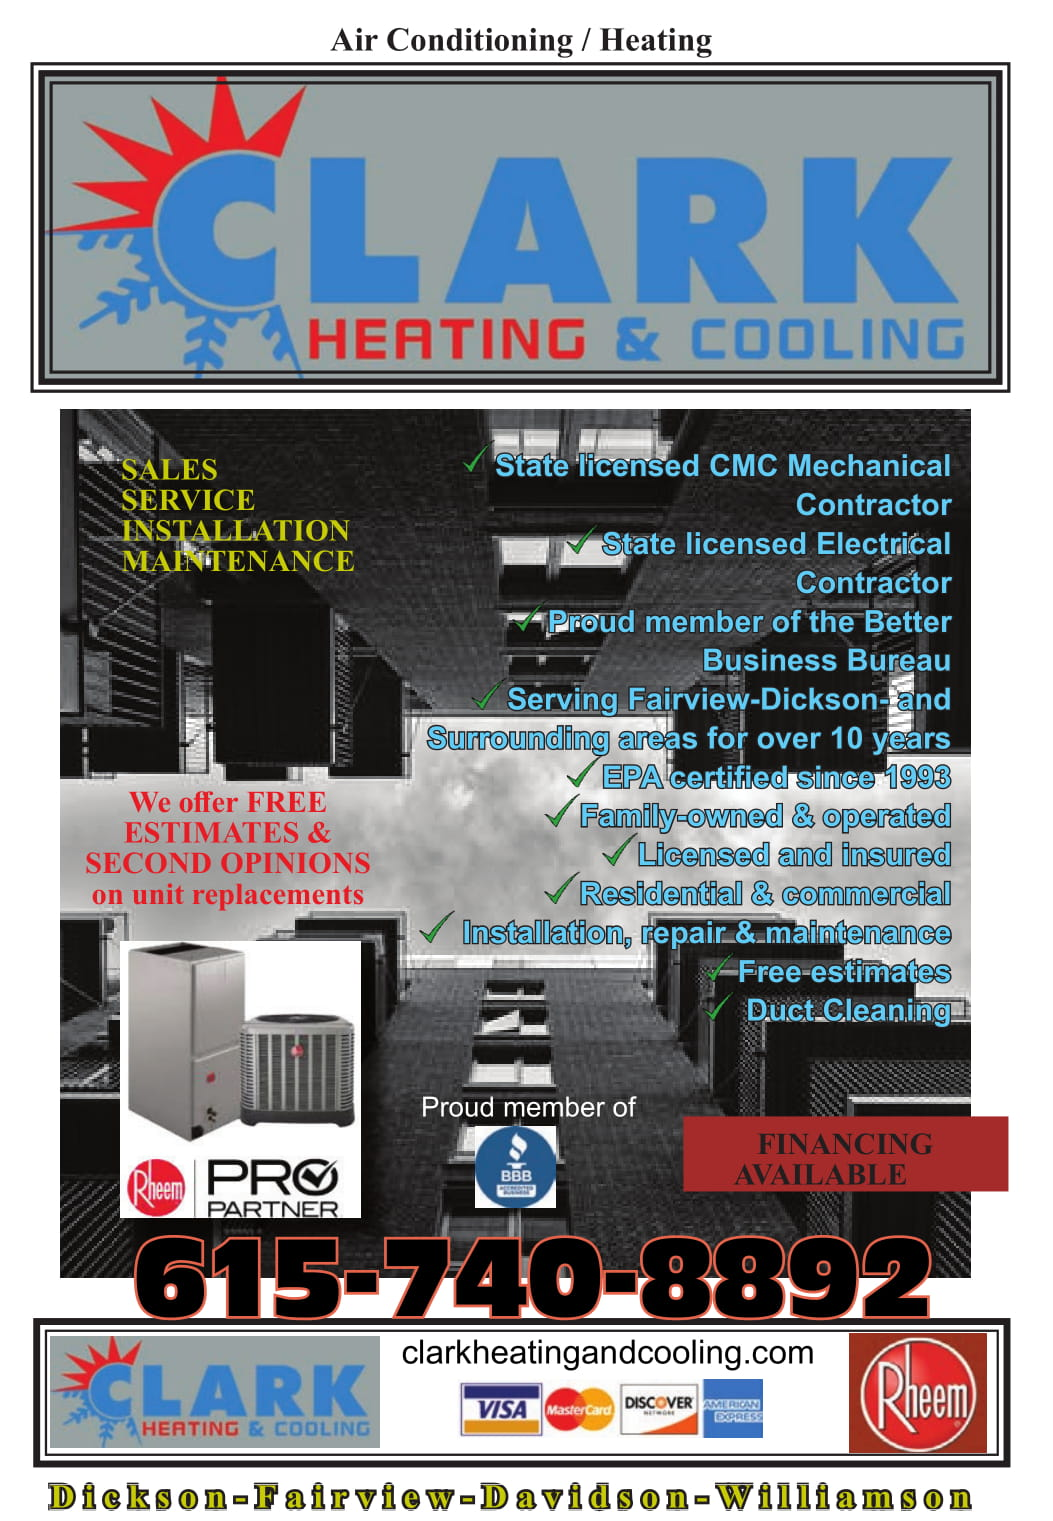 Clark Heating and Cooling